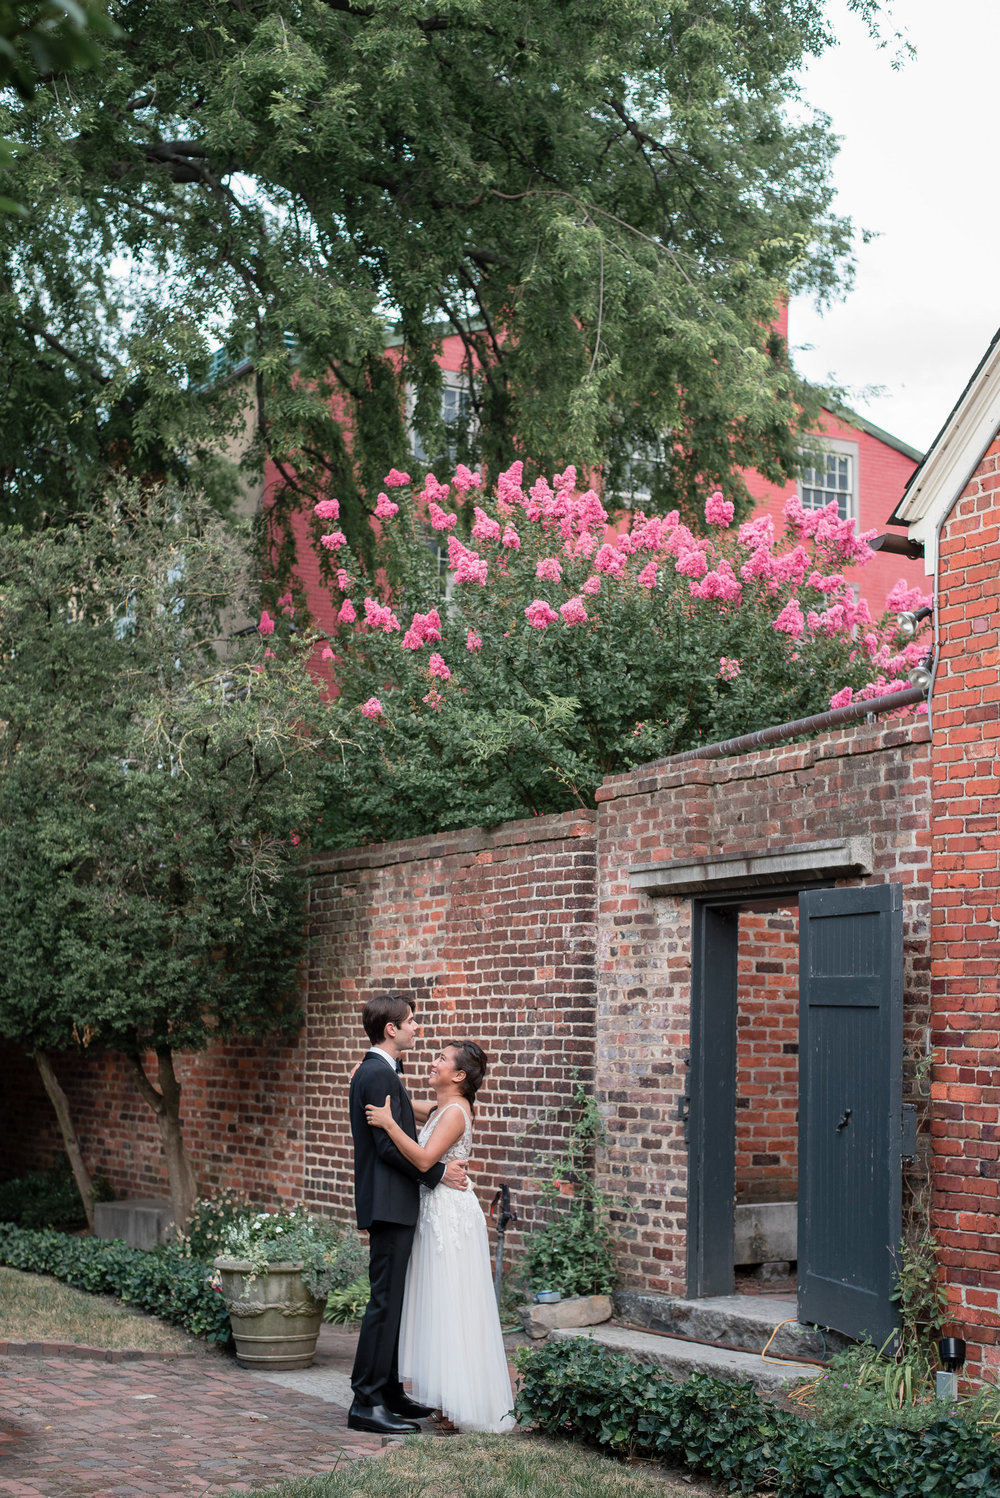 Ben and Christina in suit and white lace wedding dress outside garden gate at Poe Museum in Richmond Virginia